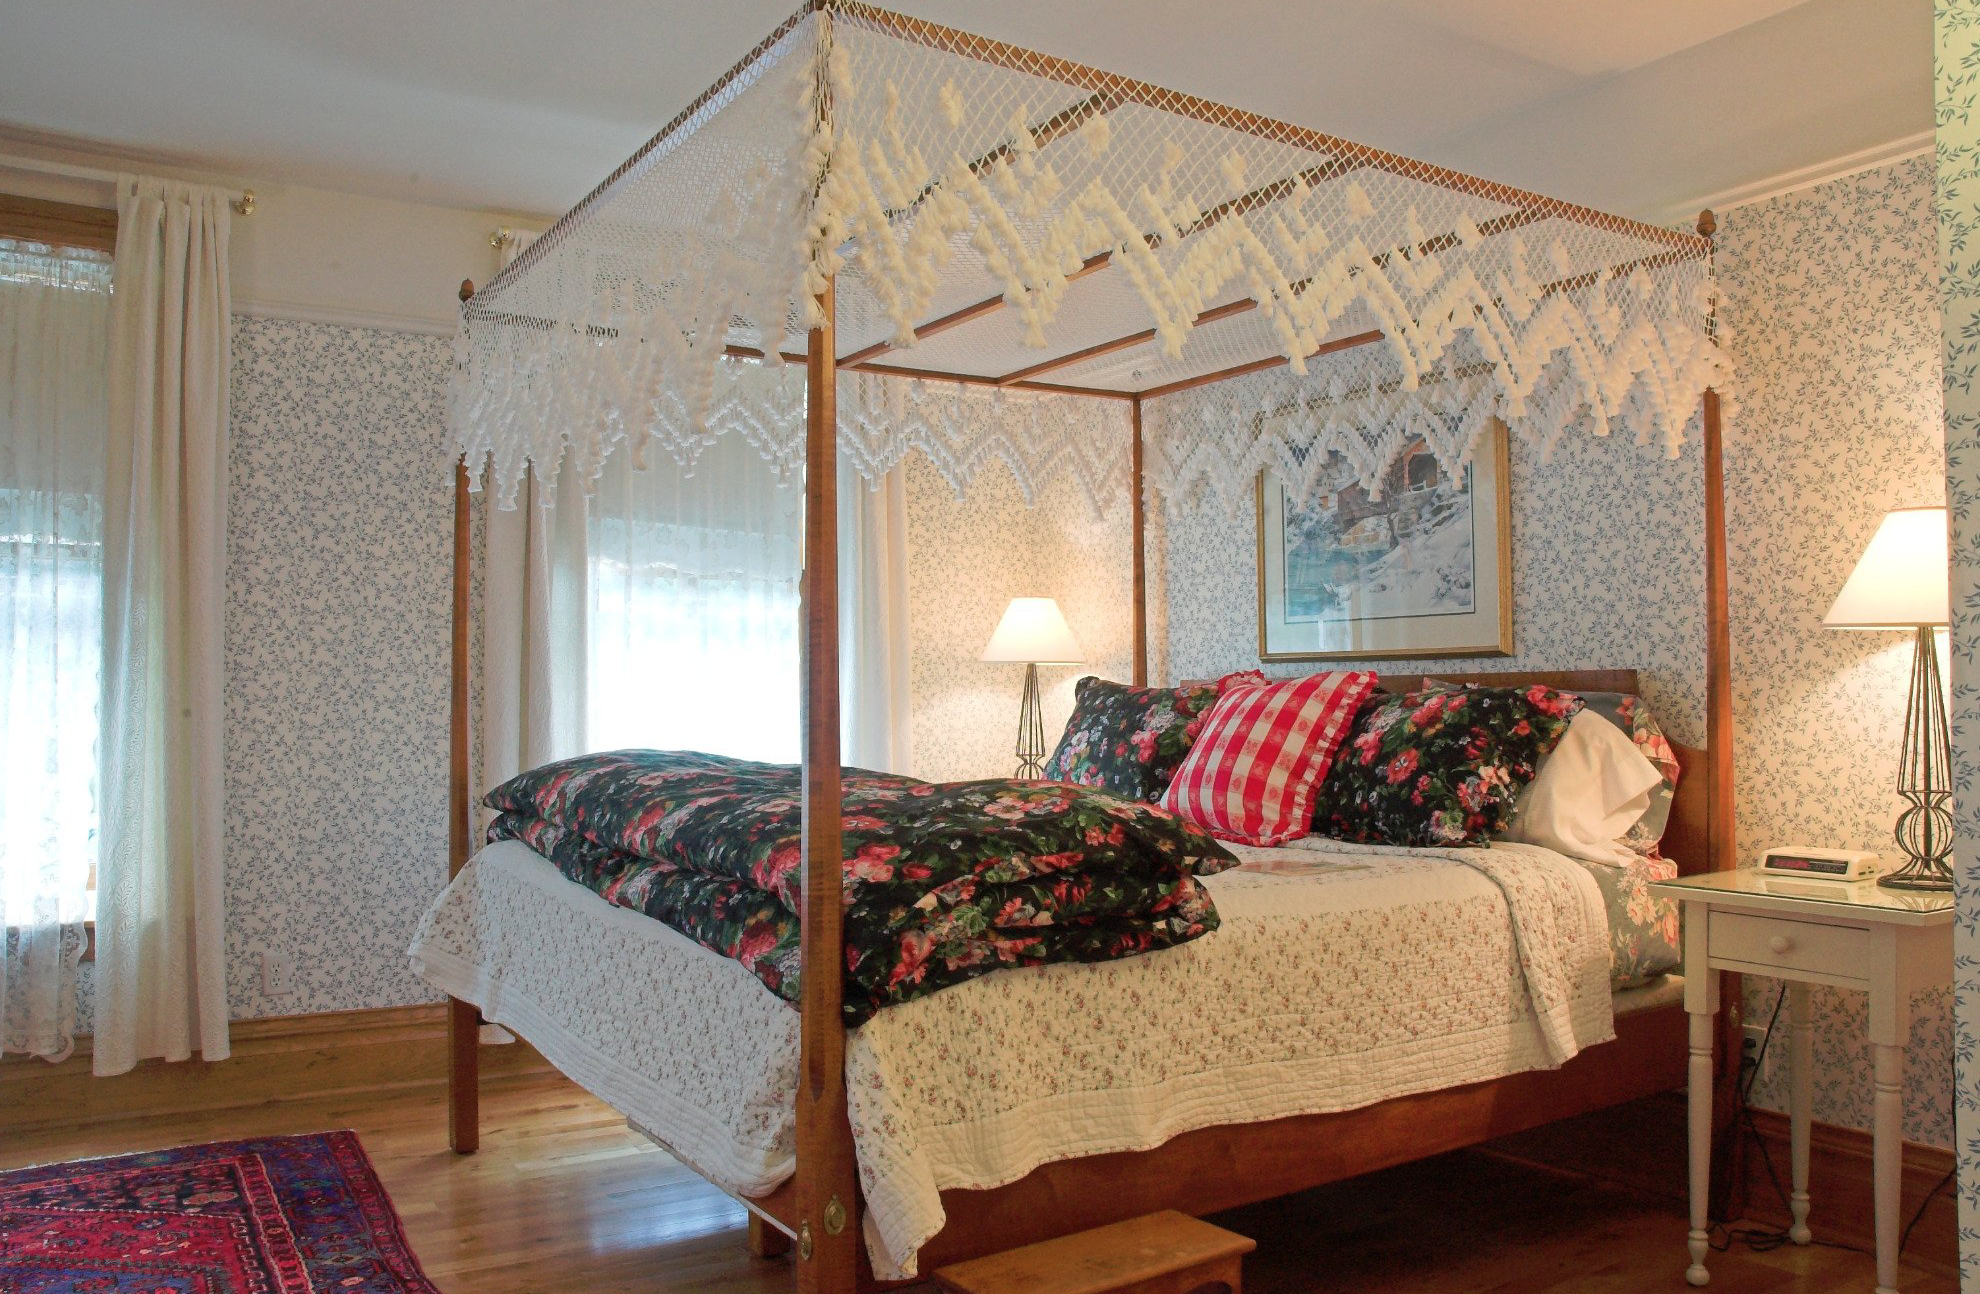 White Lace Inn Bed & Breakfast Located In Beautiful Door